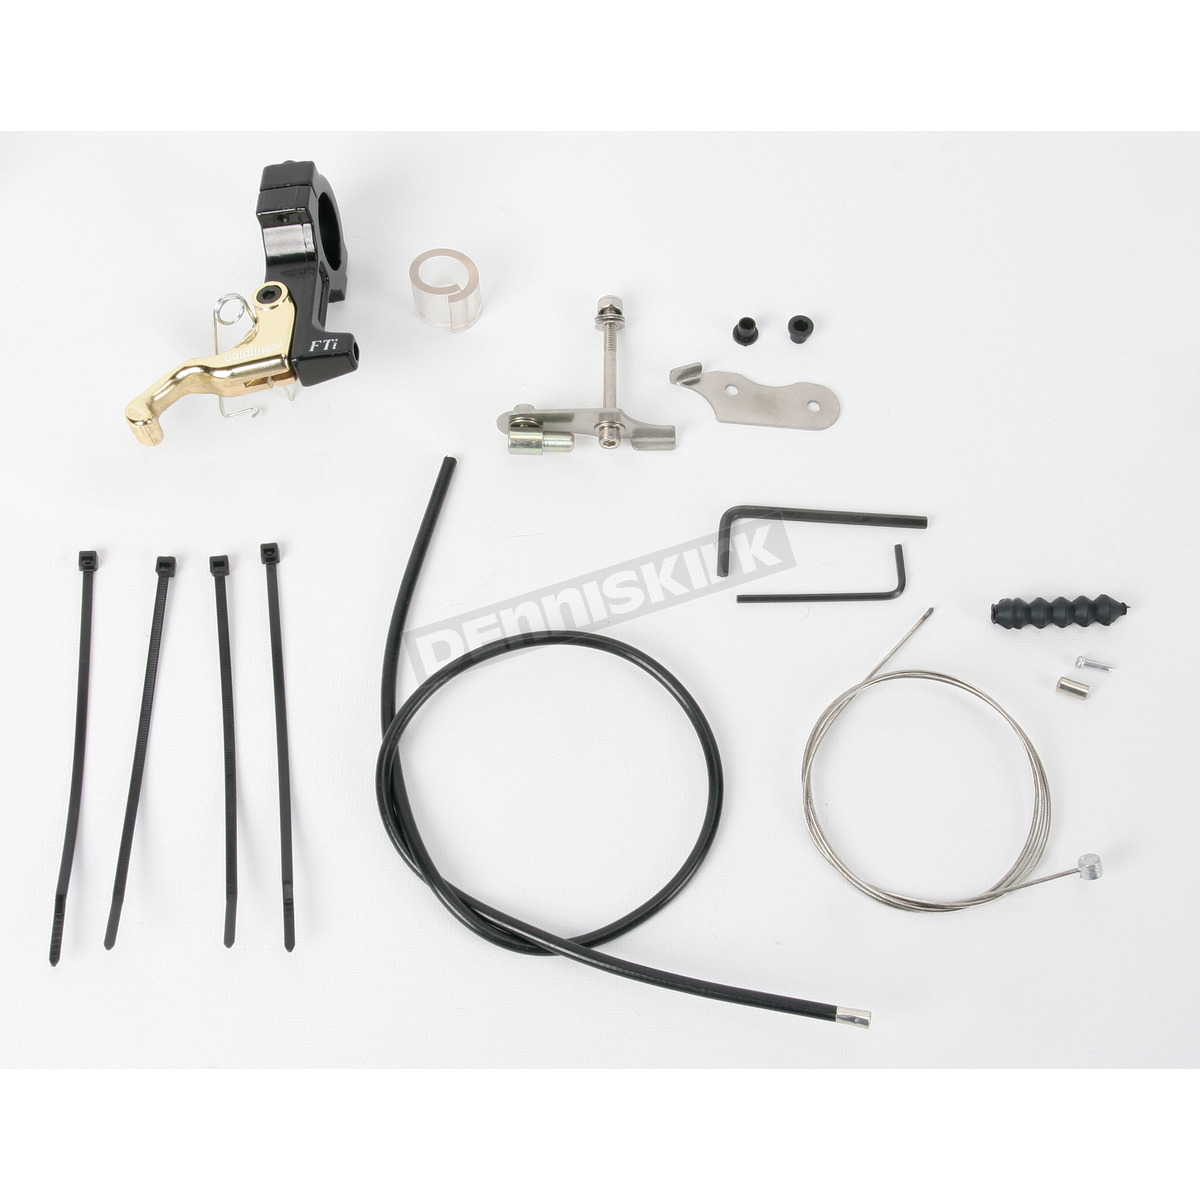 Arctic Cat Powder Special 600 Choke Cable Lever Kit 1998 1999 2000